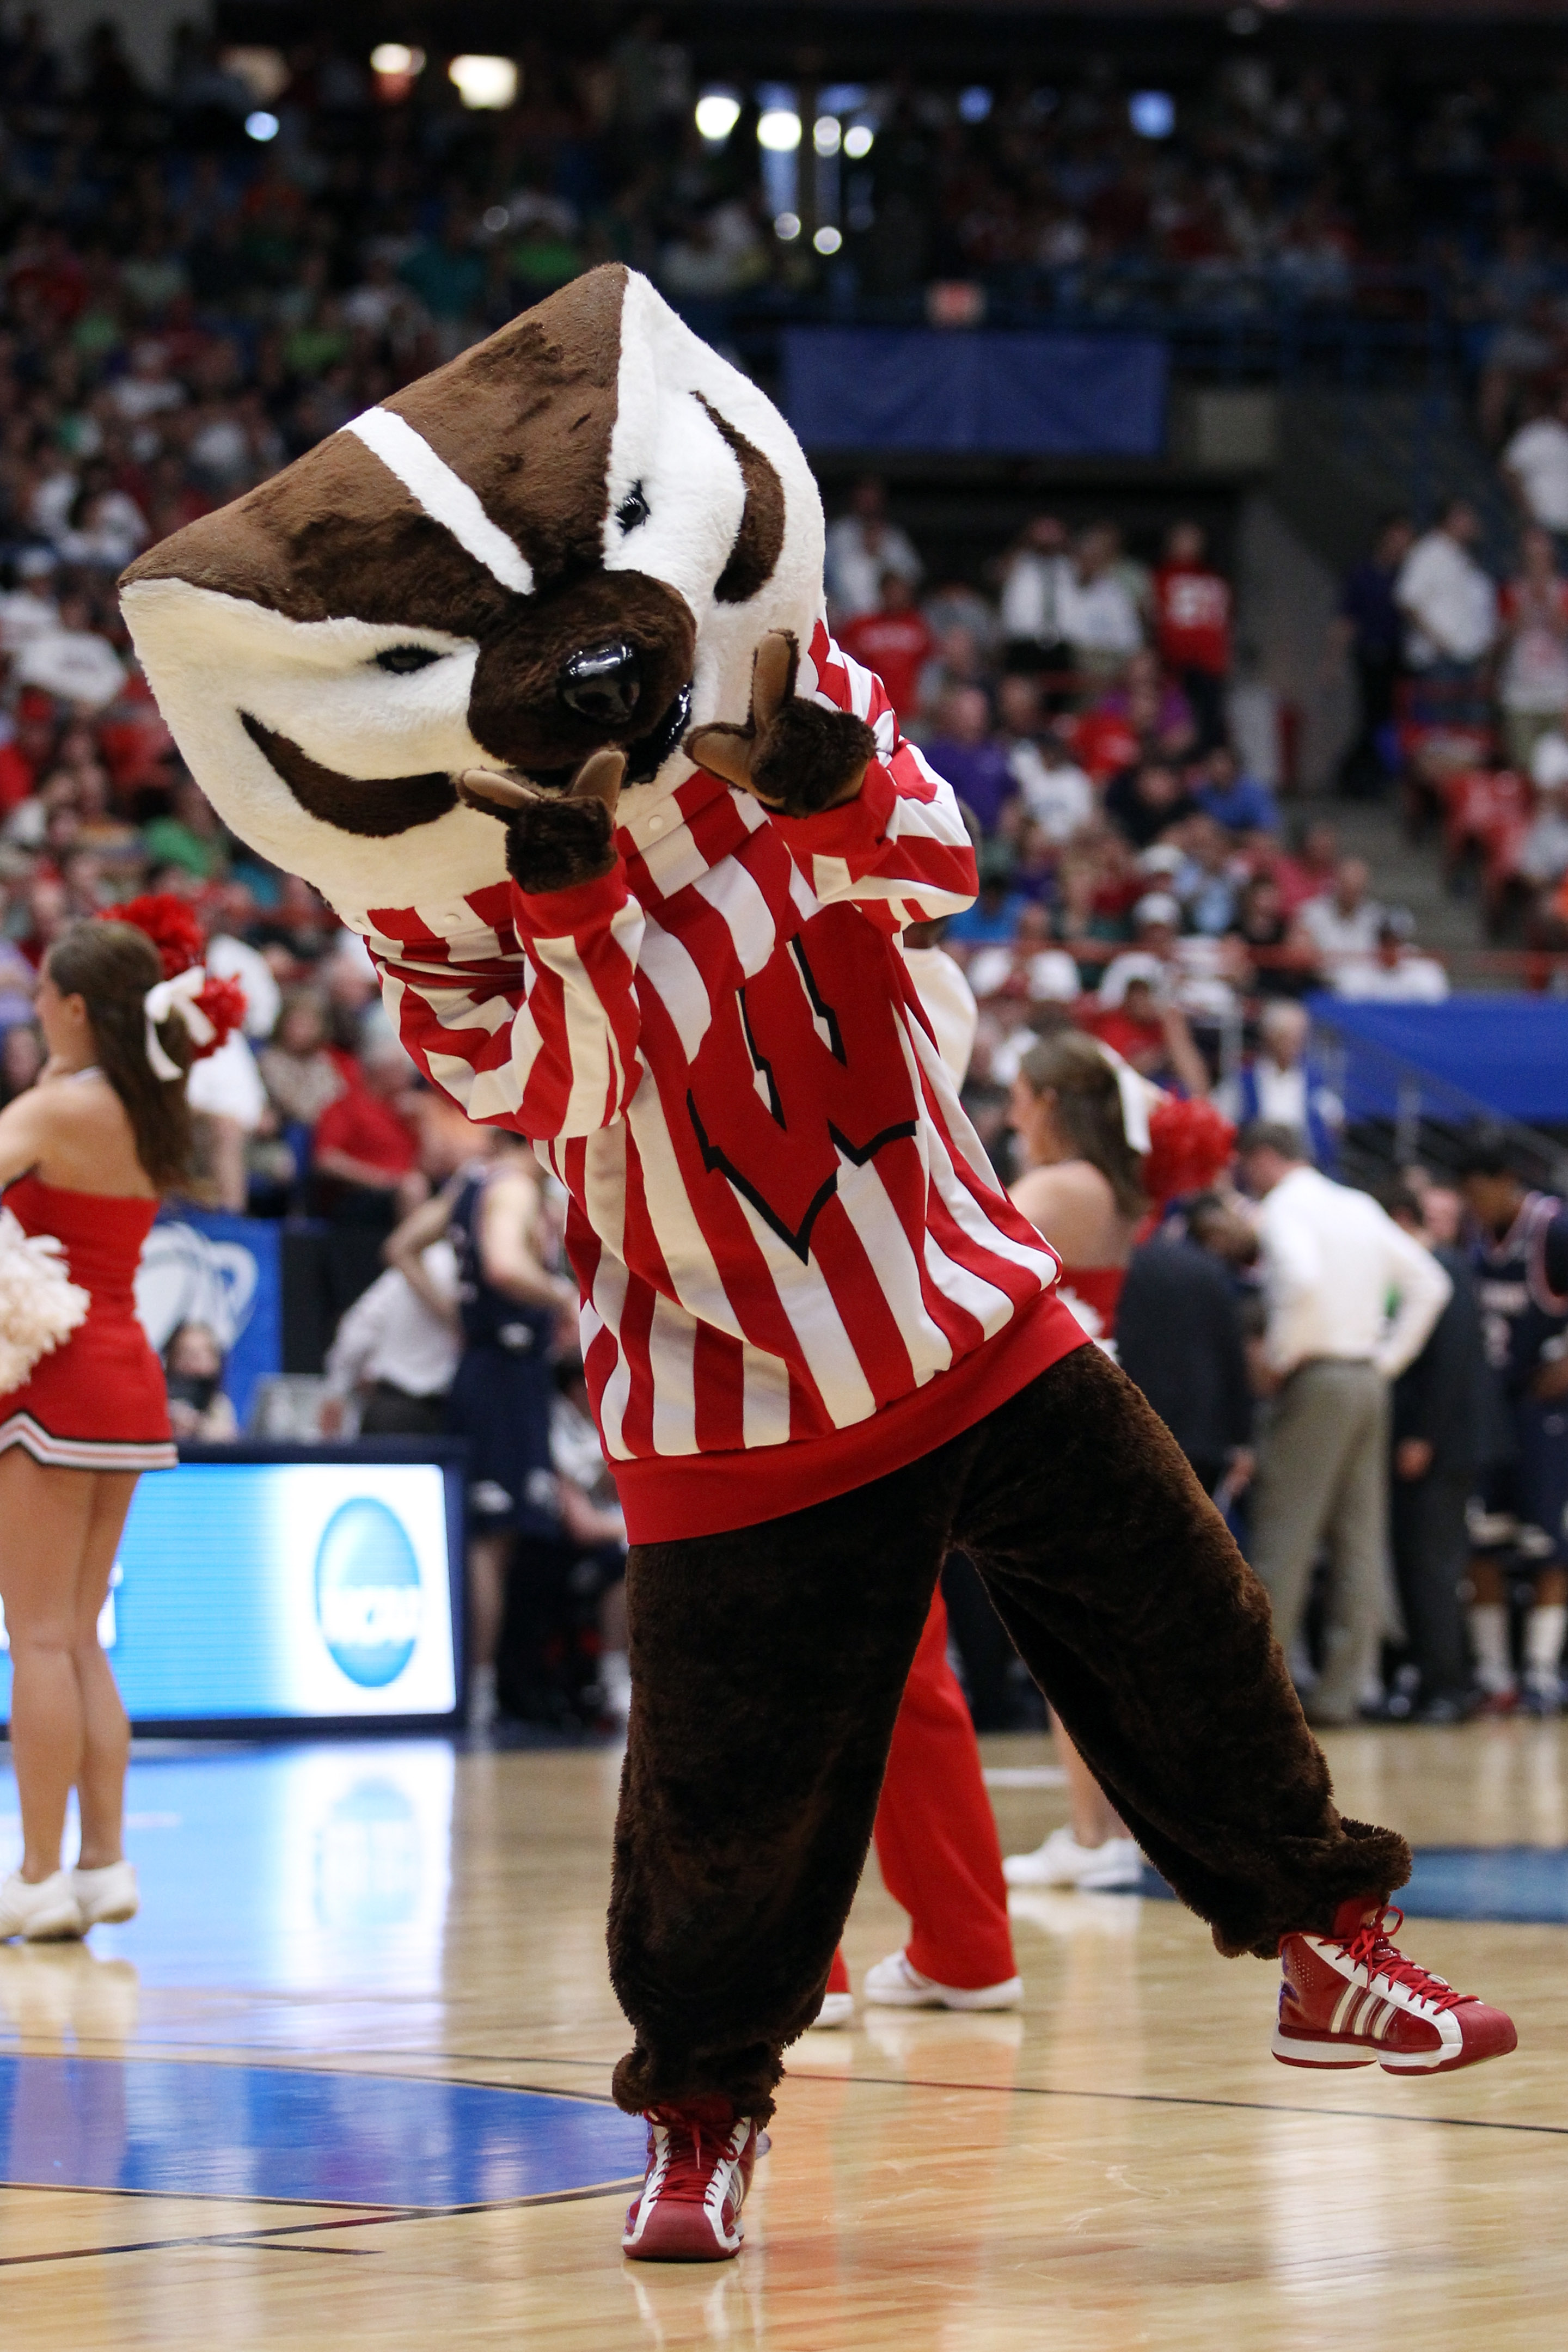 TUCSON, AZ - MARCH 17:  The Wisconsin Badgers mascot performs during their game against the Belmont Bruins in the second round of the 2011 NCAA men's basketball tournament at McKale Center on March 17, 2011 in Tucson, Arizona.  (Photo by Christian Peterse